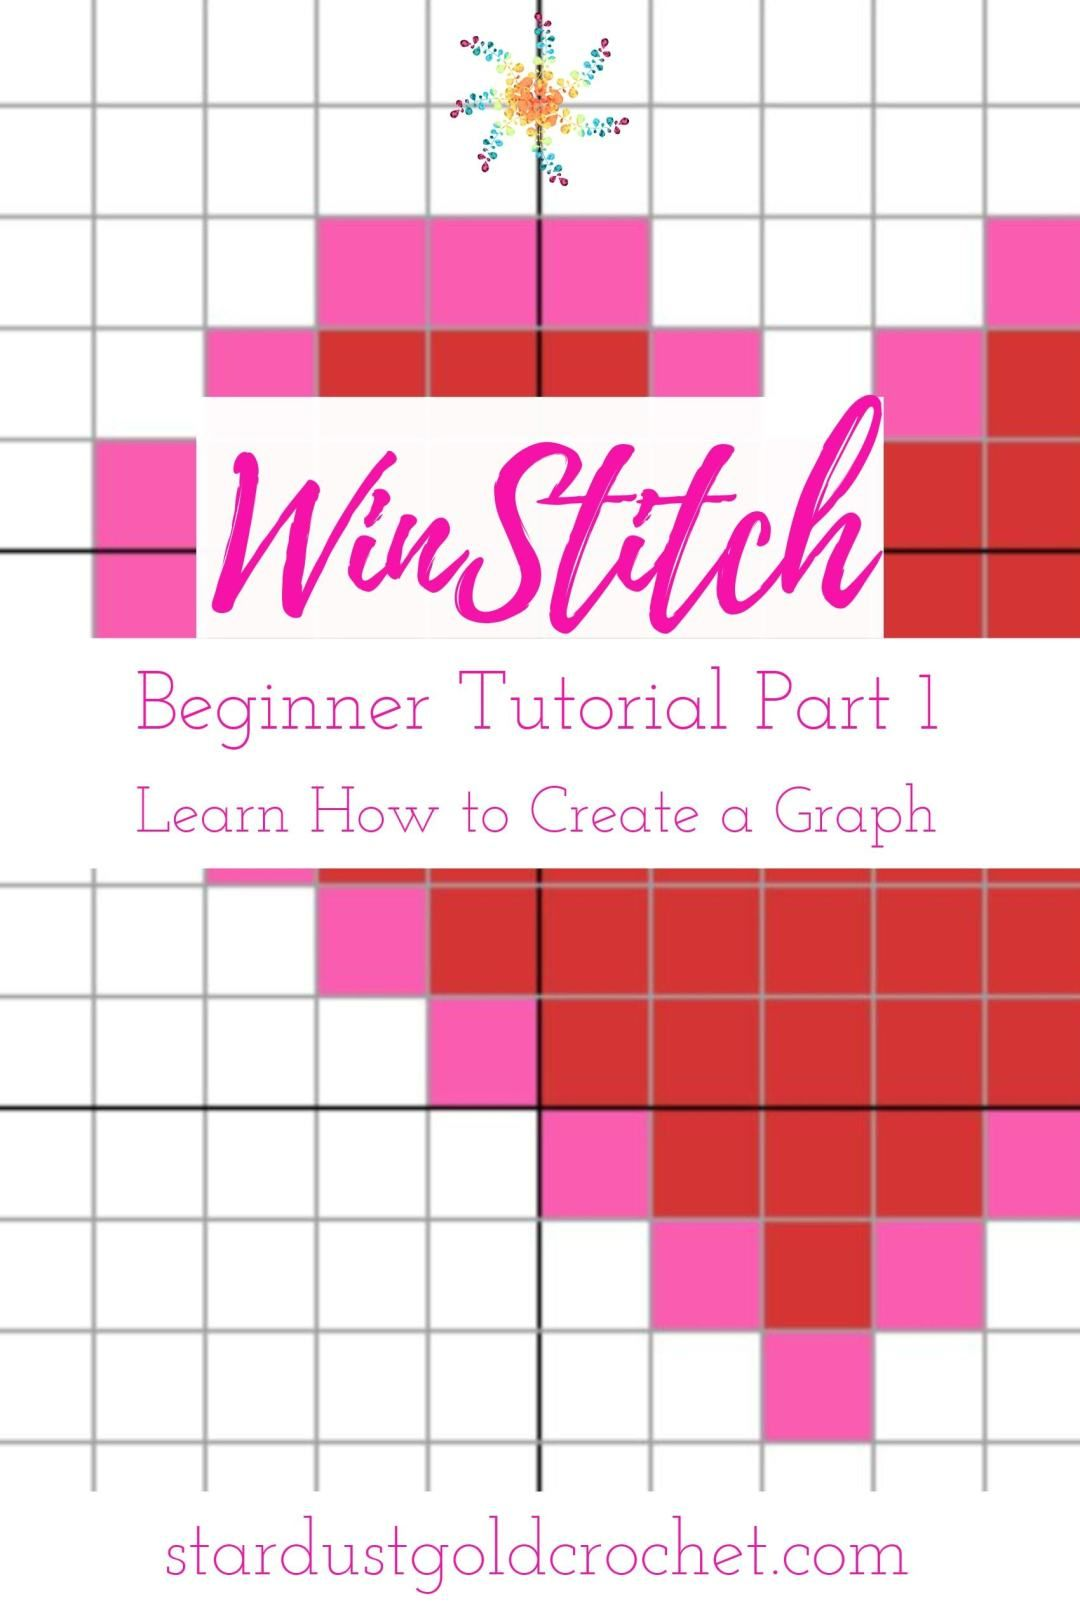 Winstitch Graphing Program Tutorial